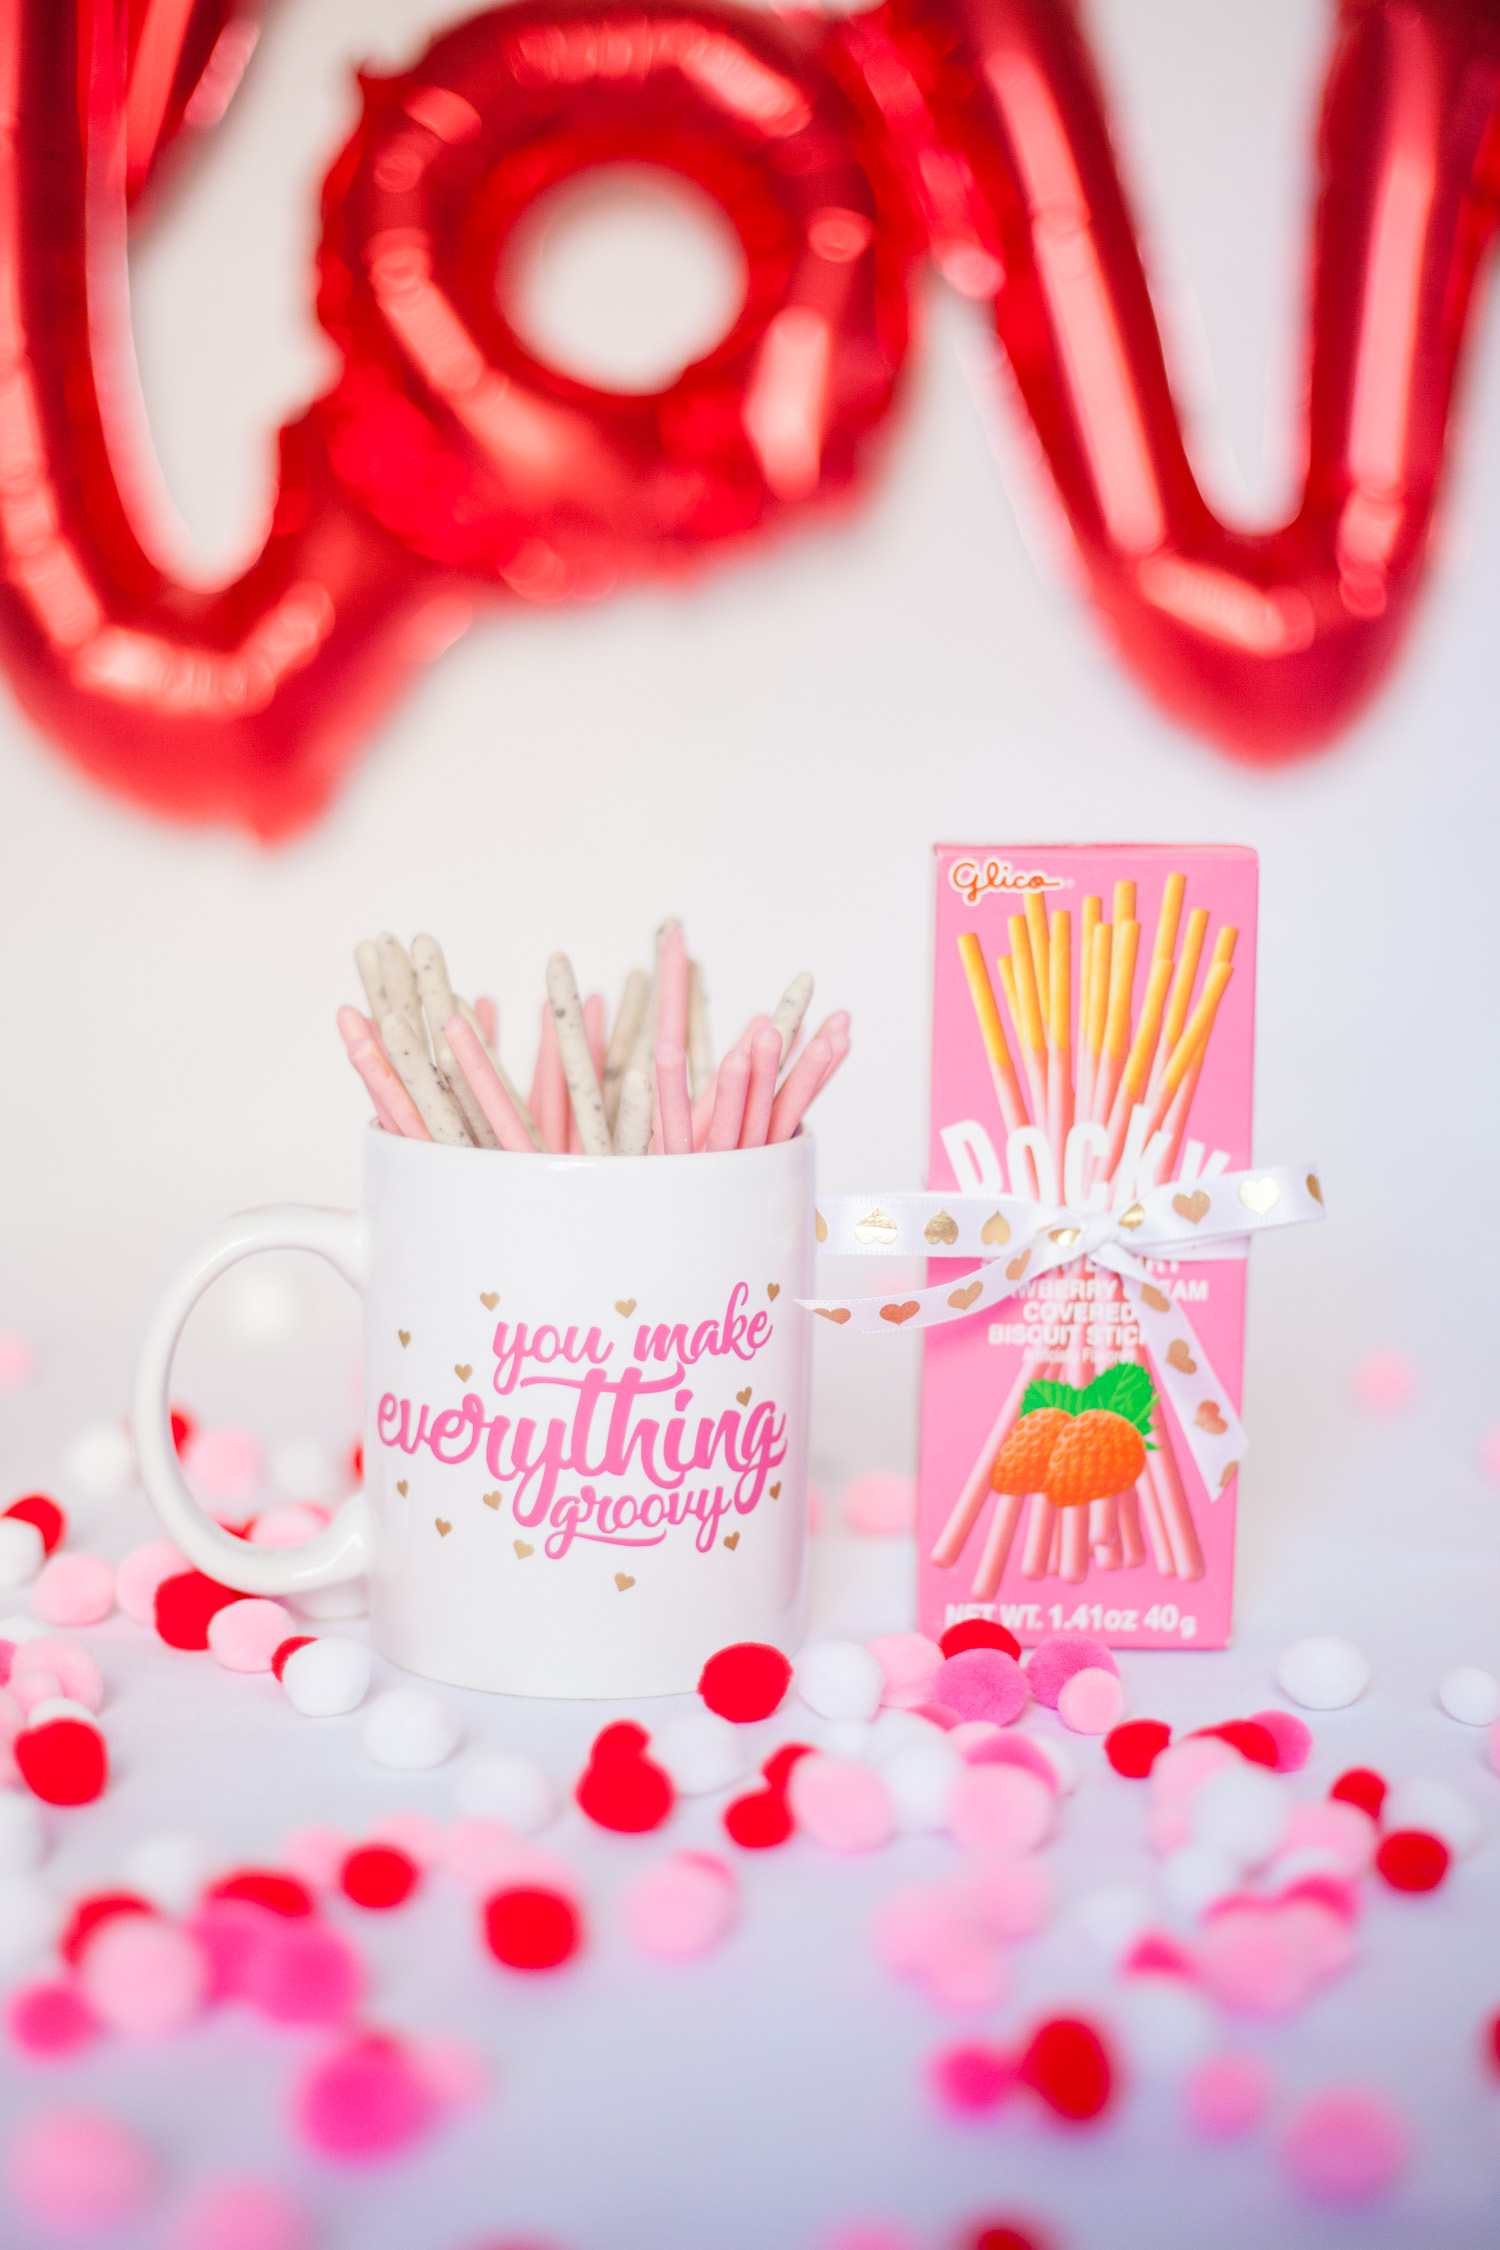 DIY Valentine's Day presents! FREE svg cut files for Cricut and Silhouette included.